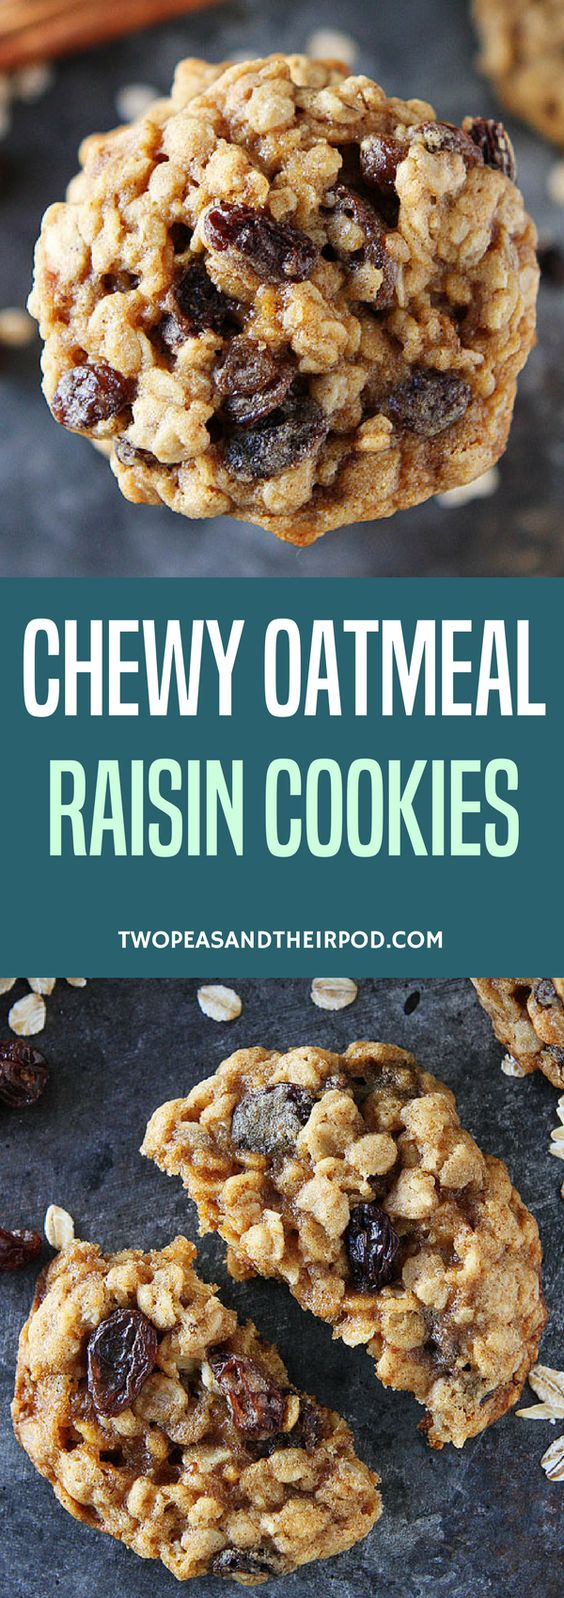 The Best Oatmeal Raisin Cookies | Two Peas & Their Pod